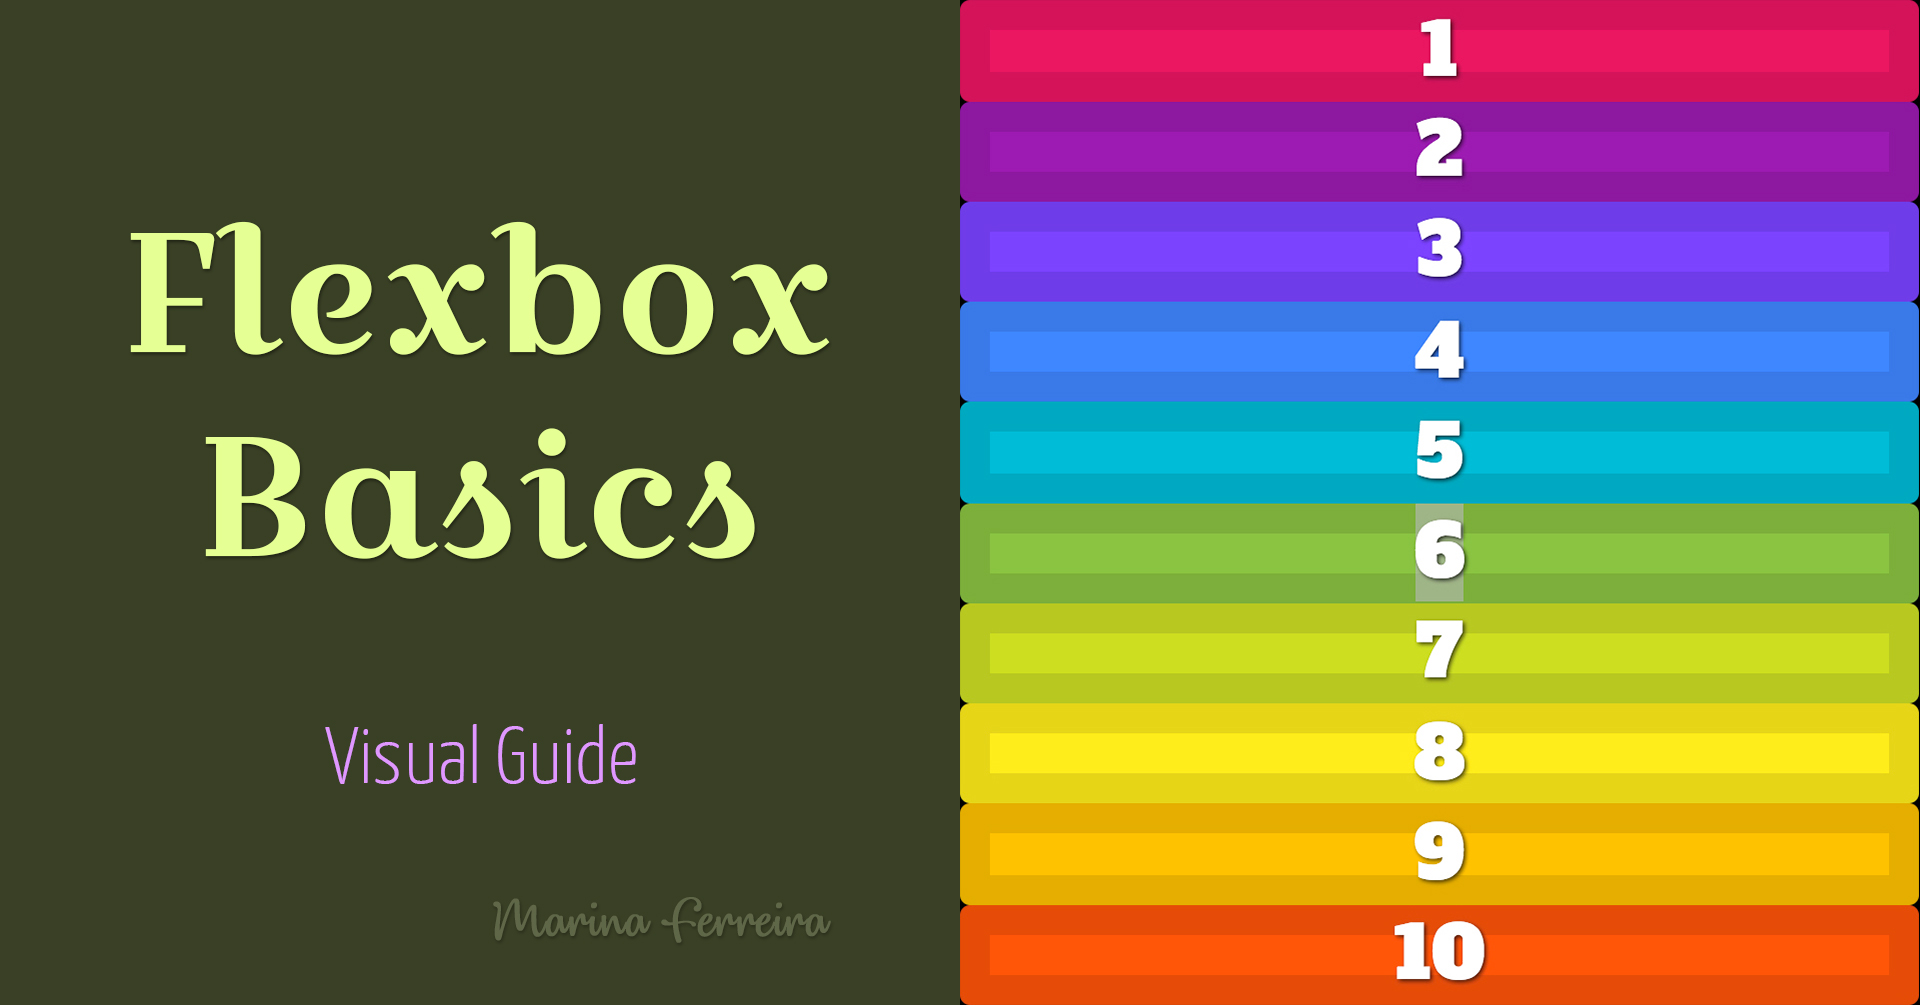 Flexbox Visual Guide Tutorial - Learn the basics of CSS Flexbox Module